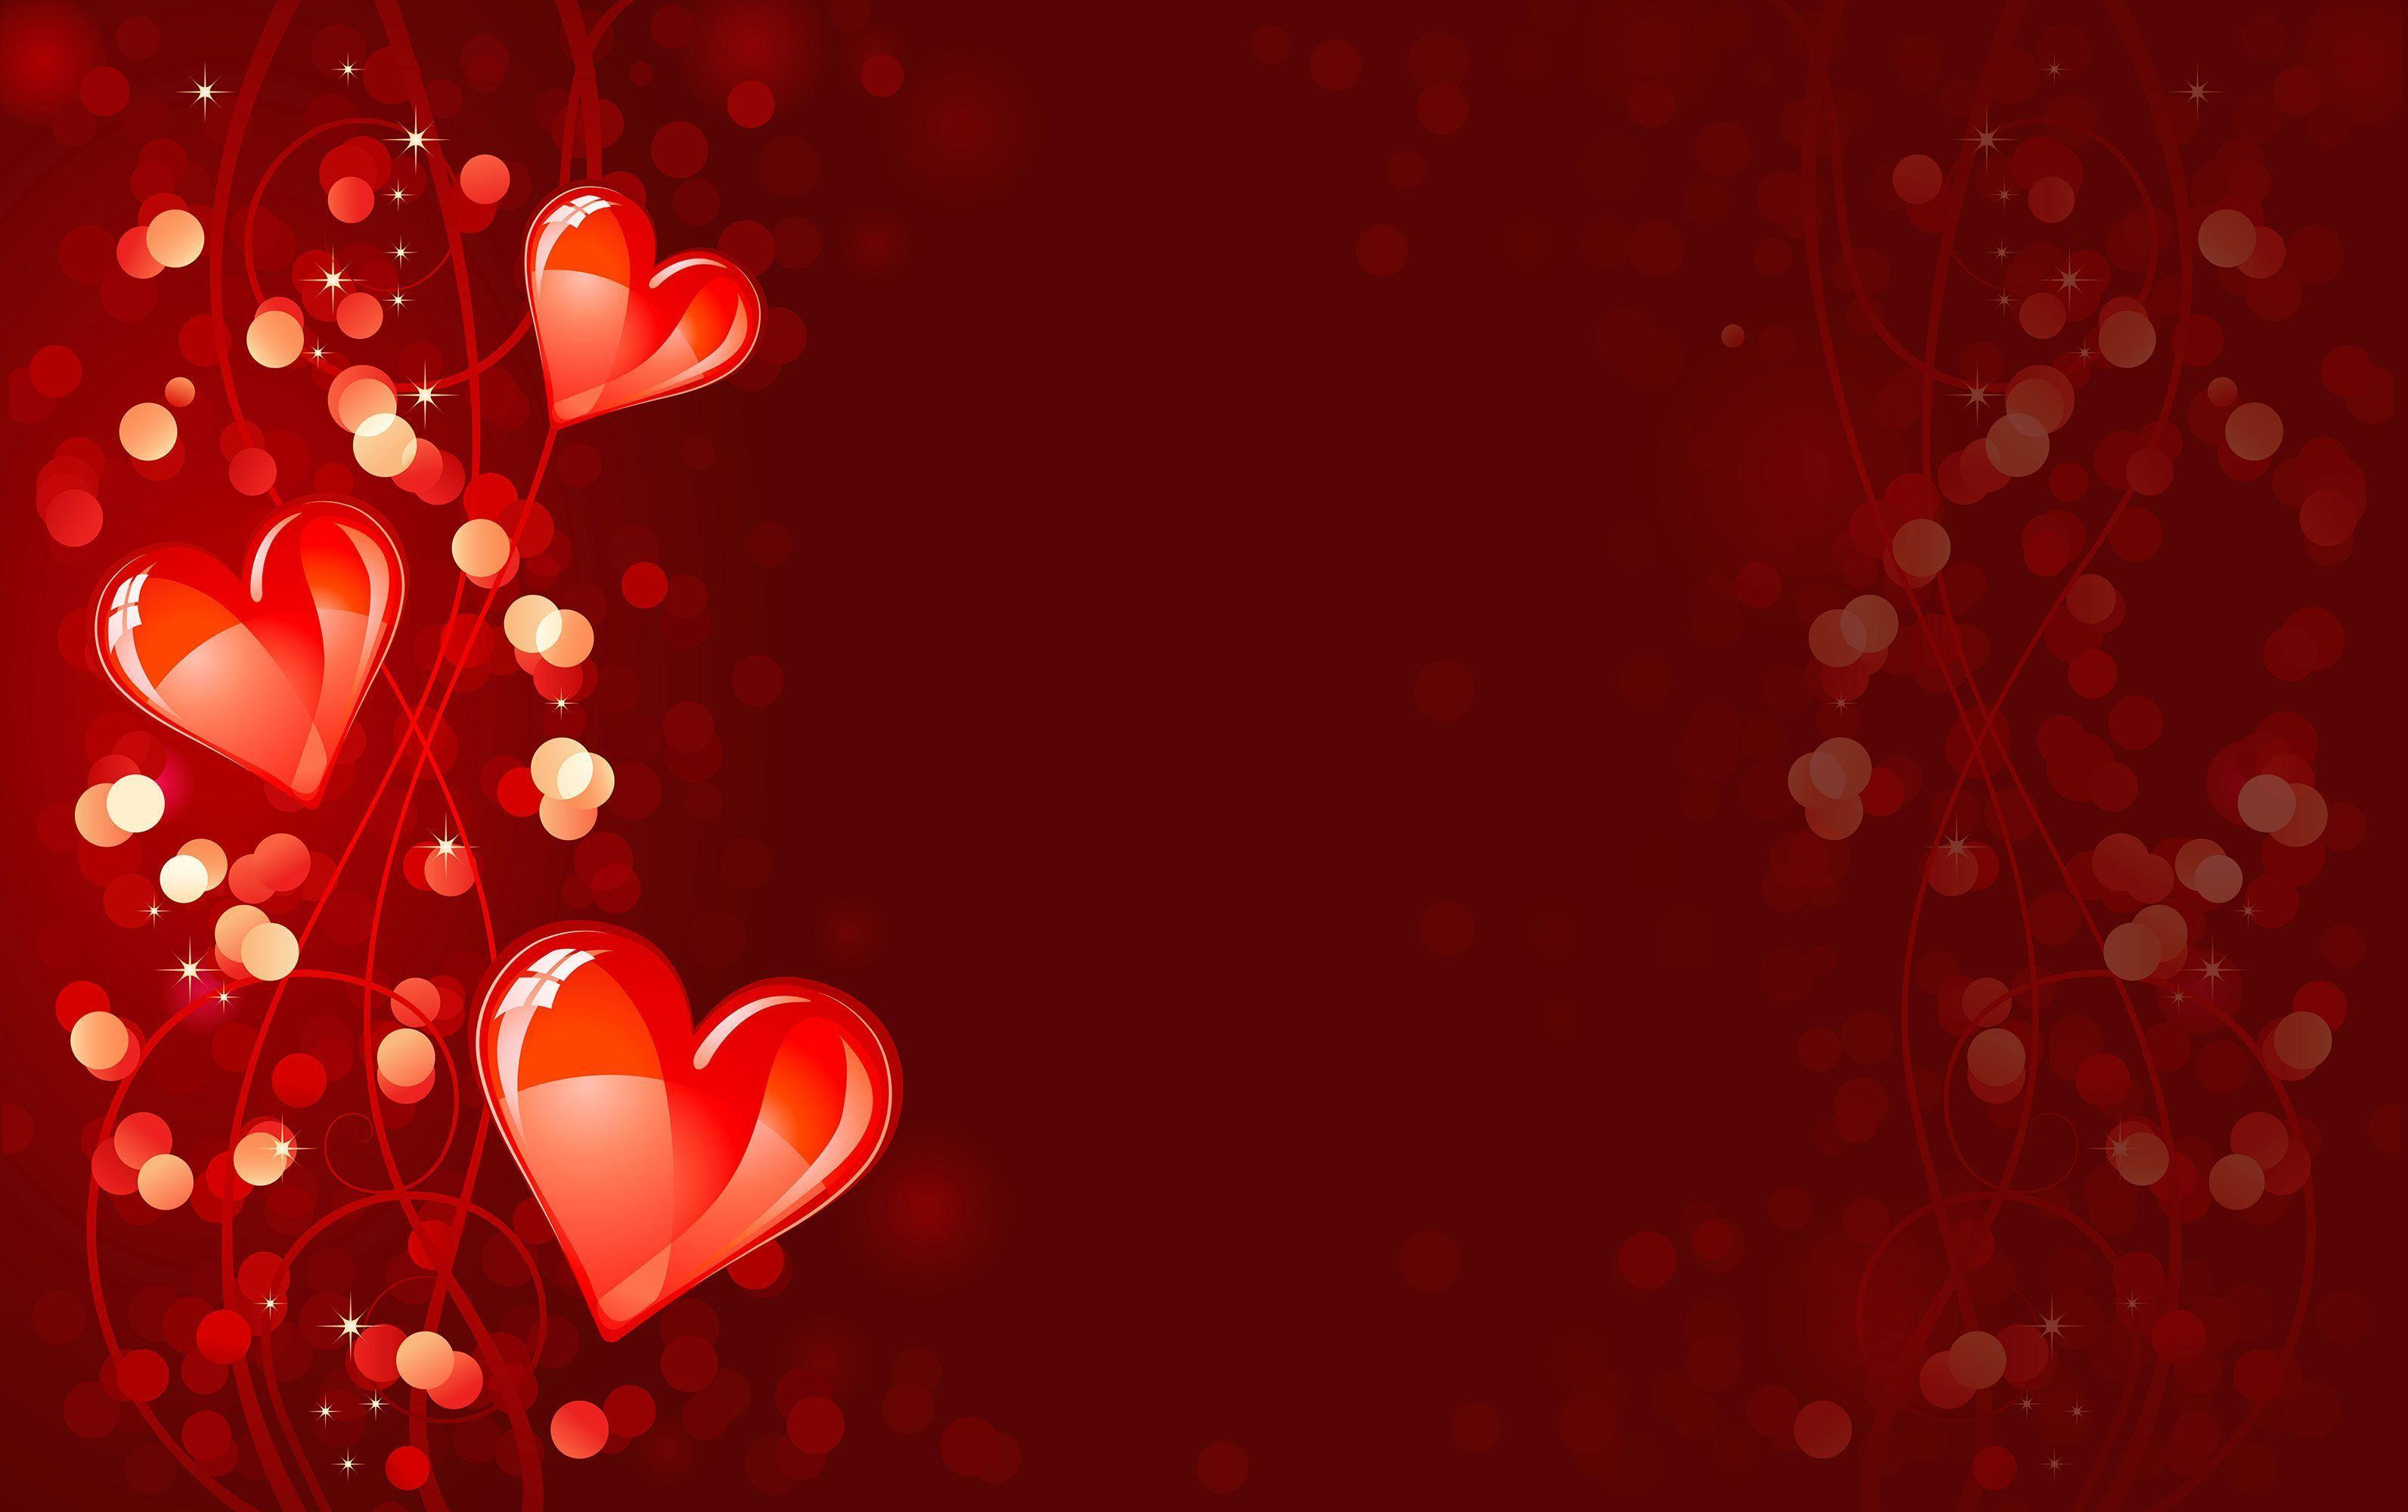 Free Valentines Backgrounds - Wallpaper Cave